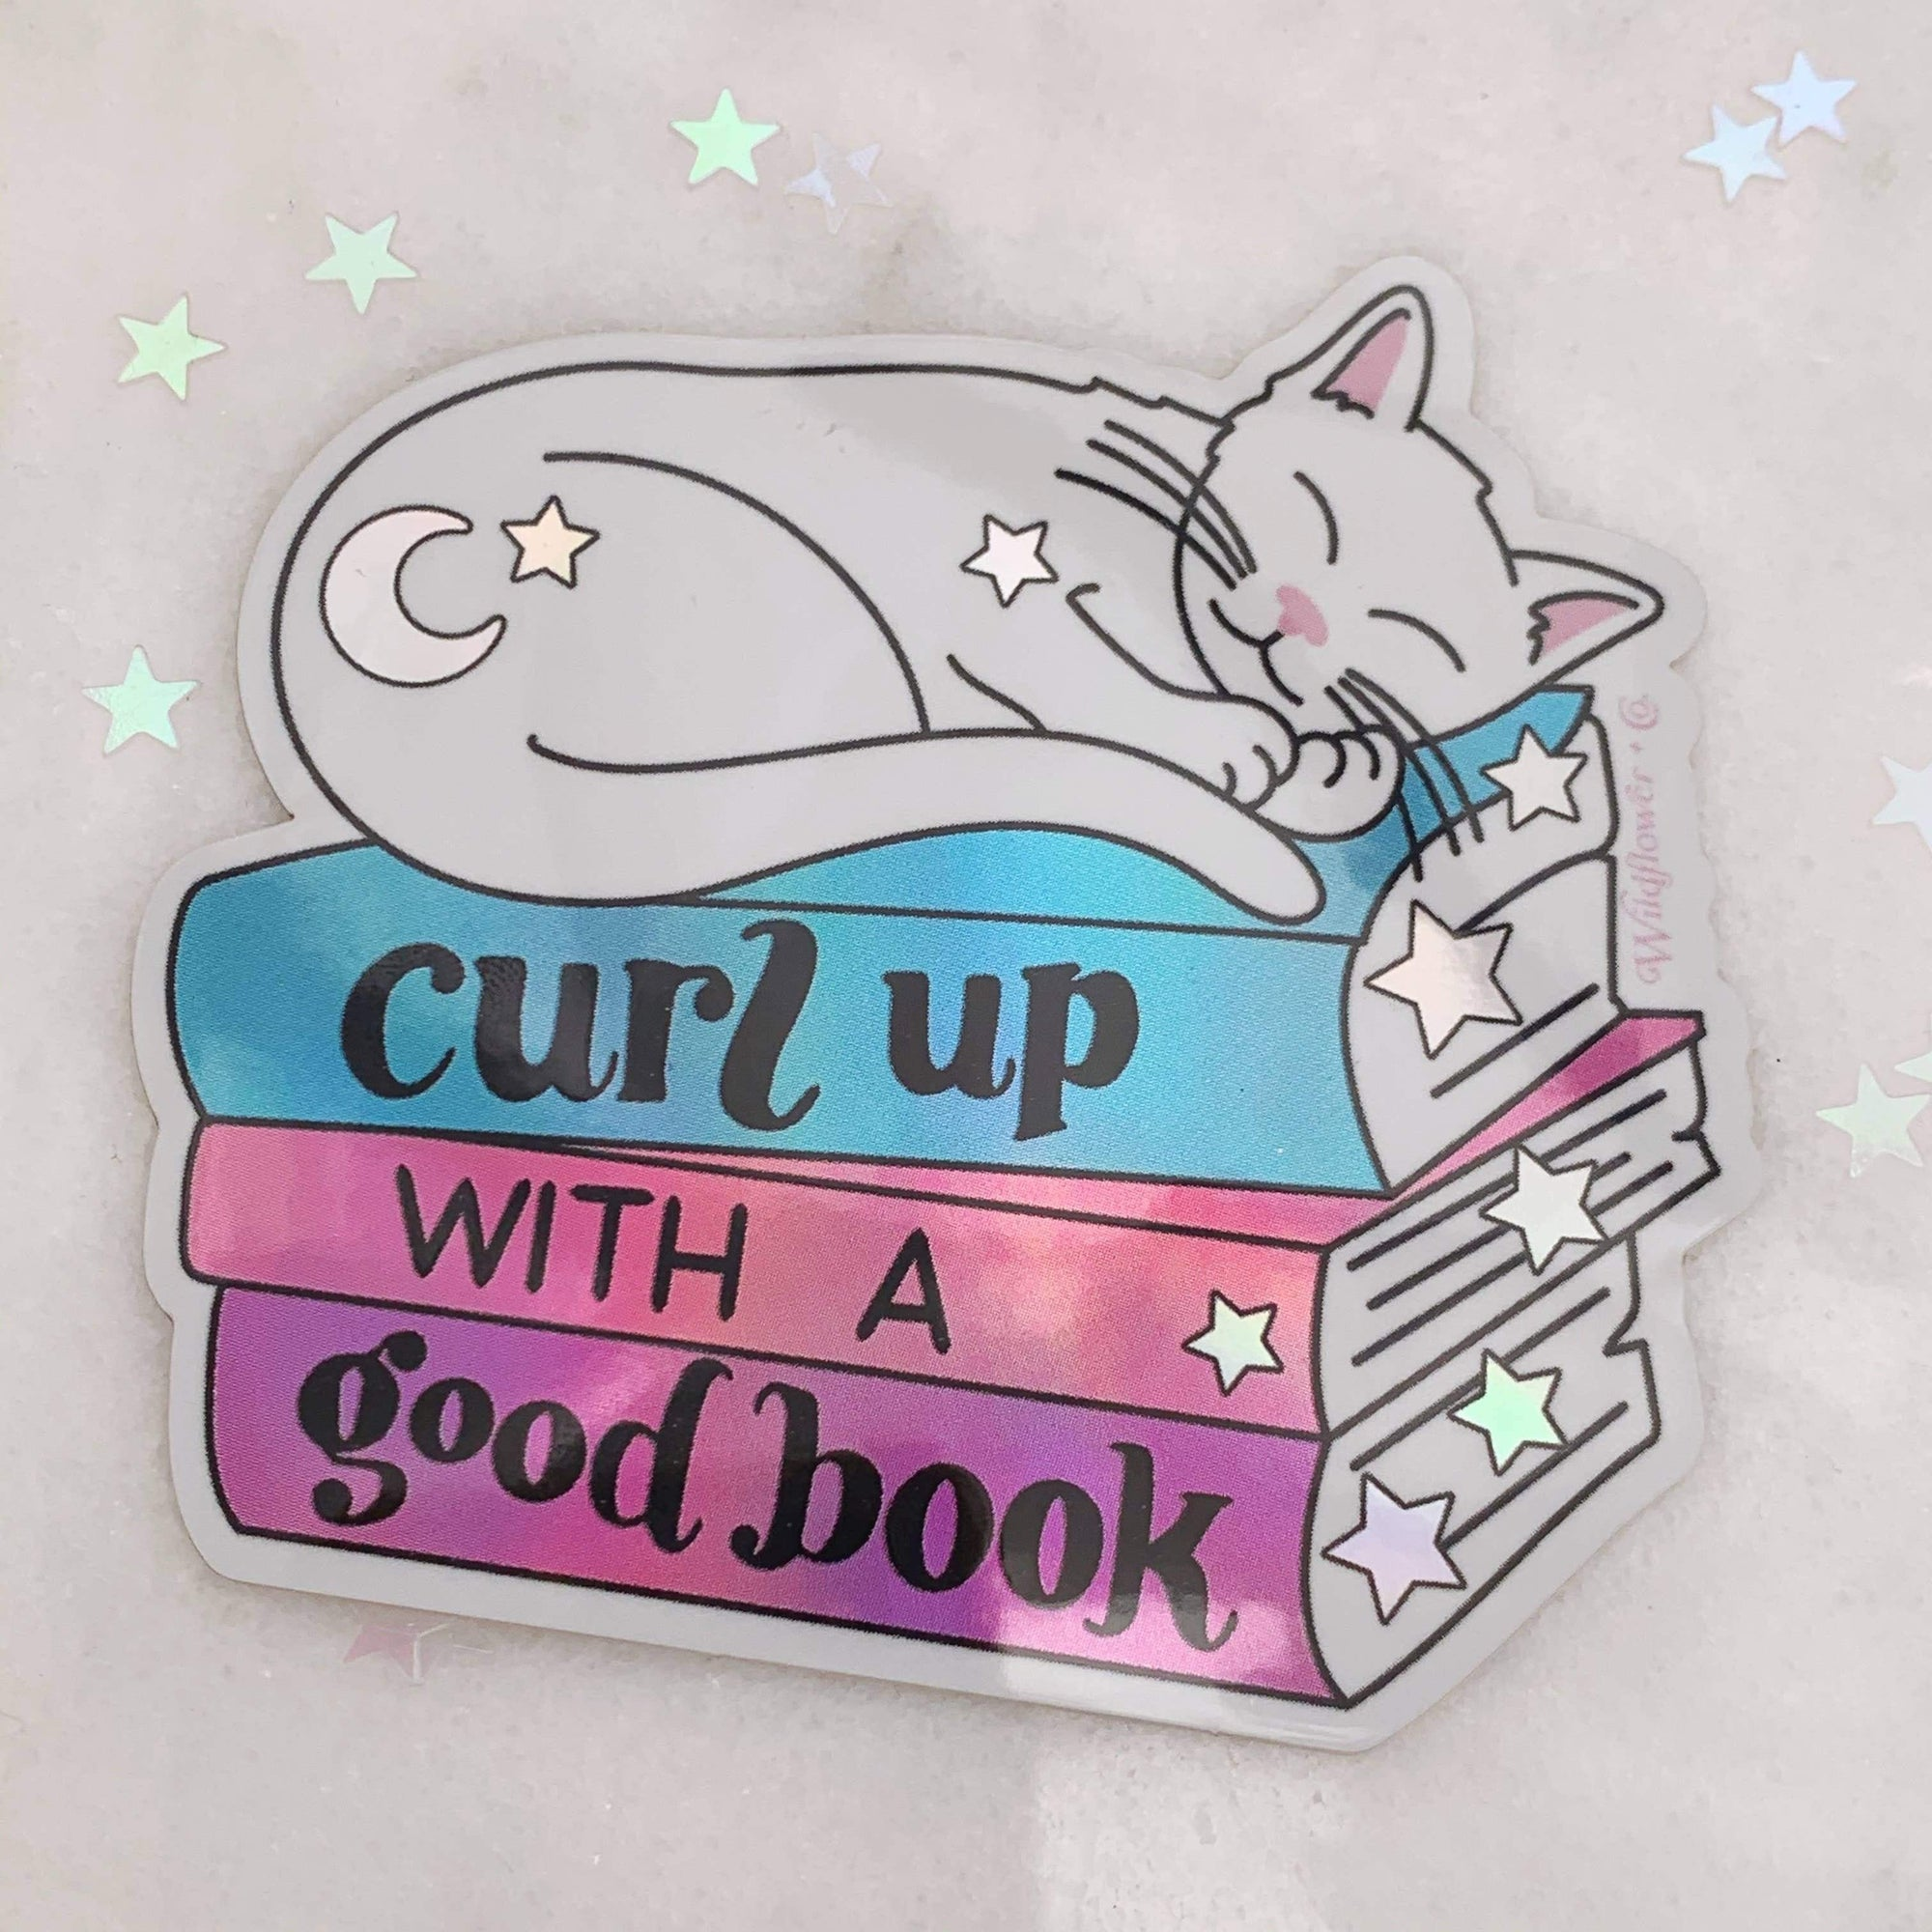 Curl Up with a Good Book holo vinyl sticker Wildflower + Co. Paper Products